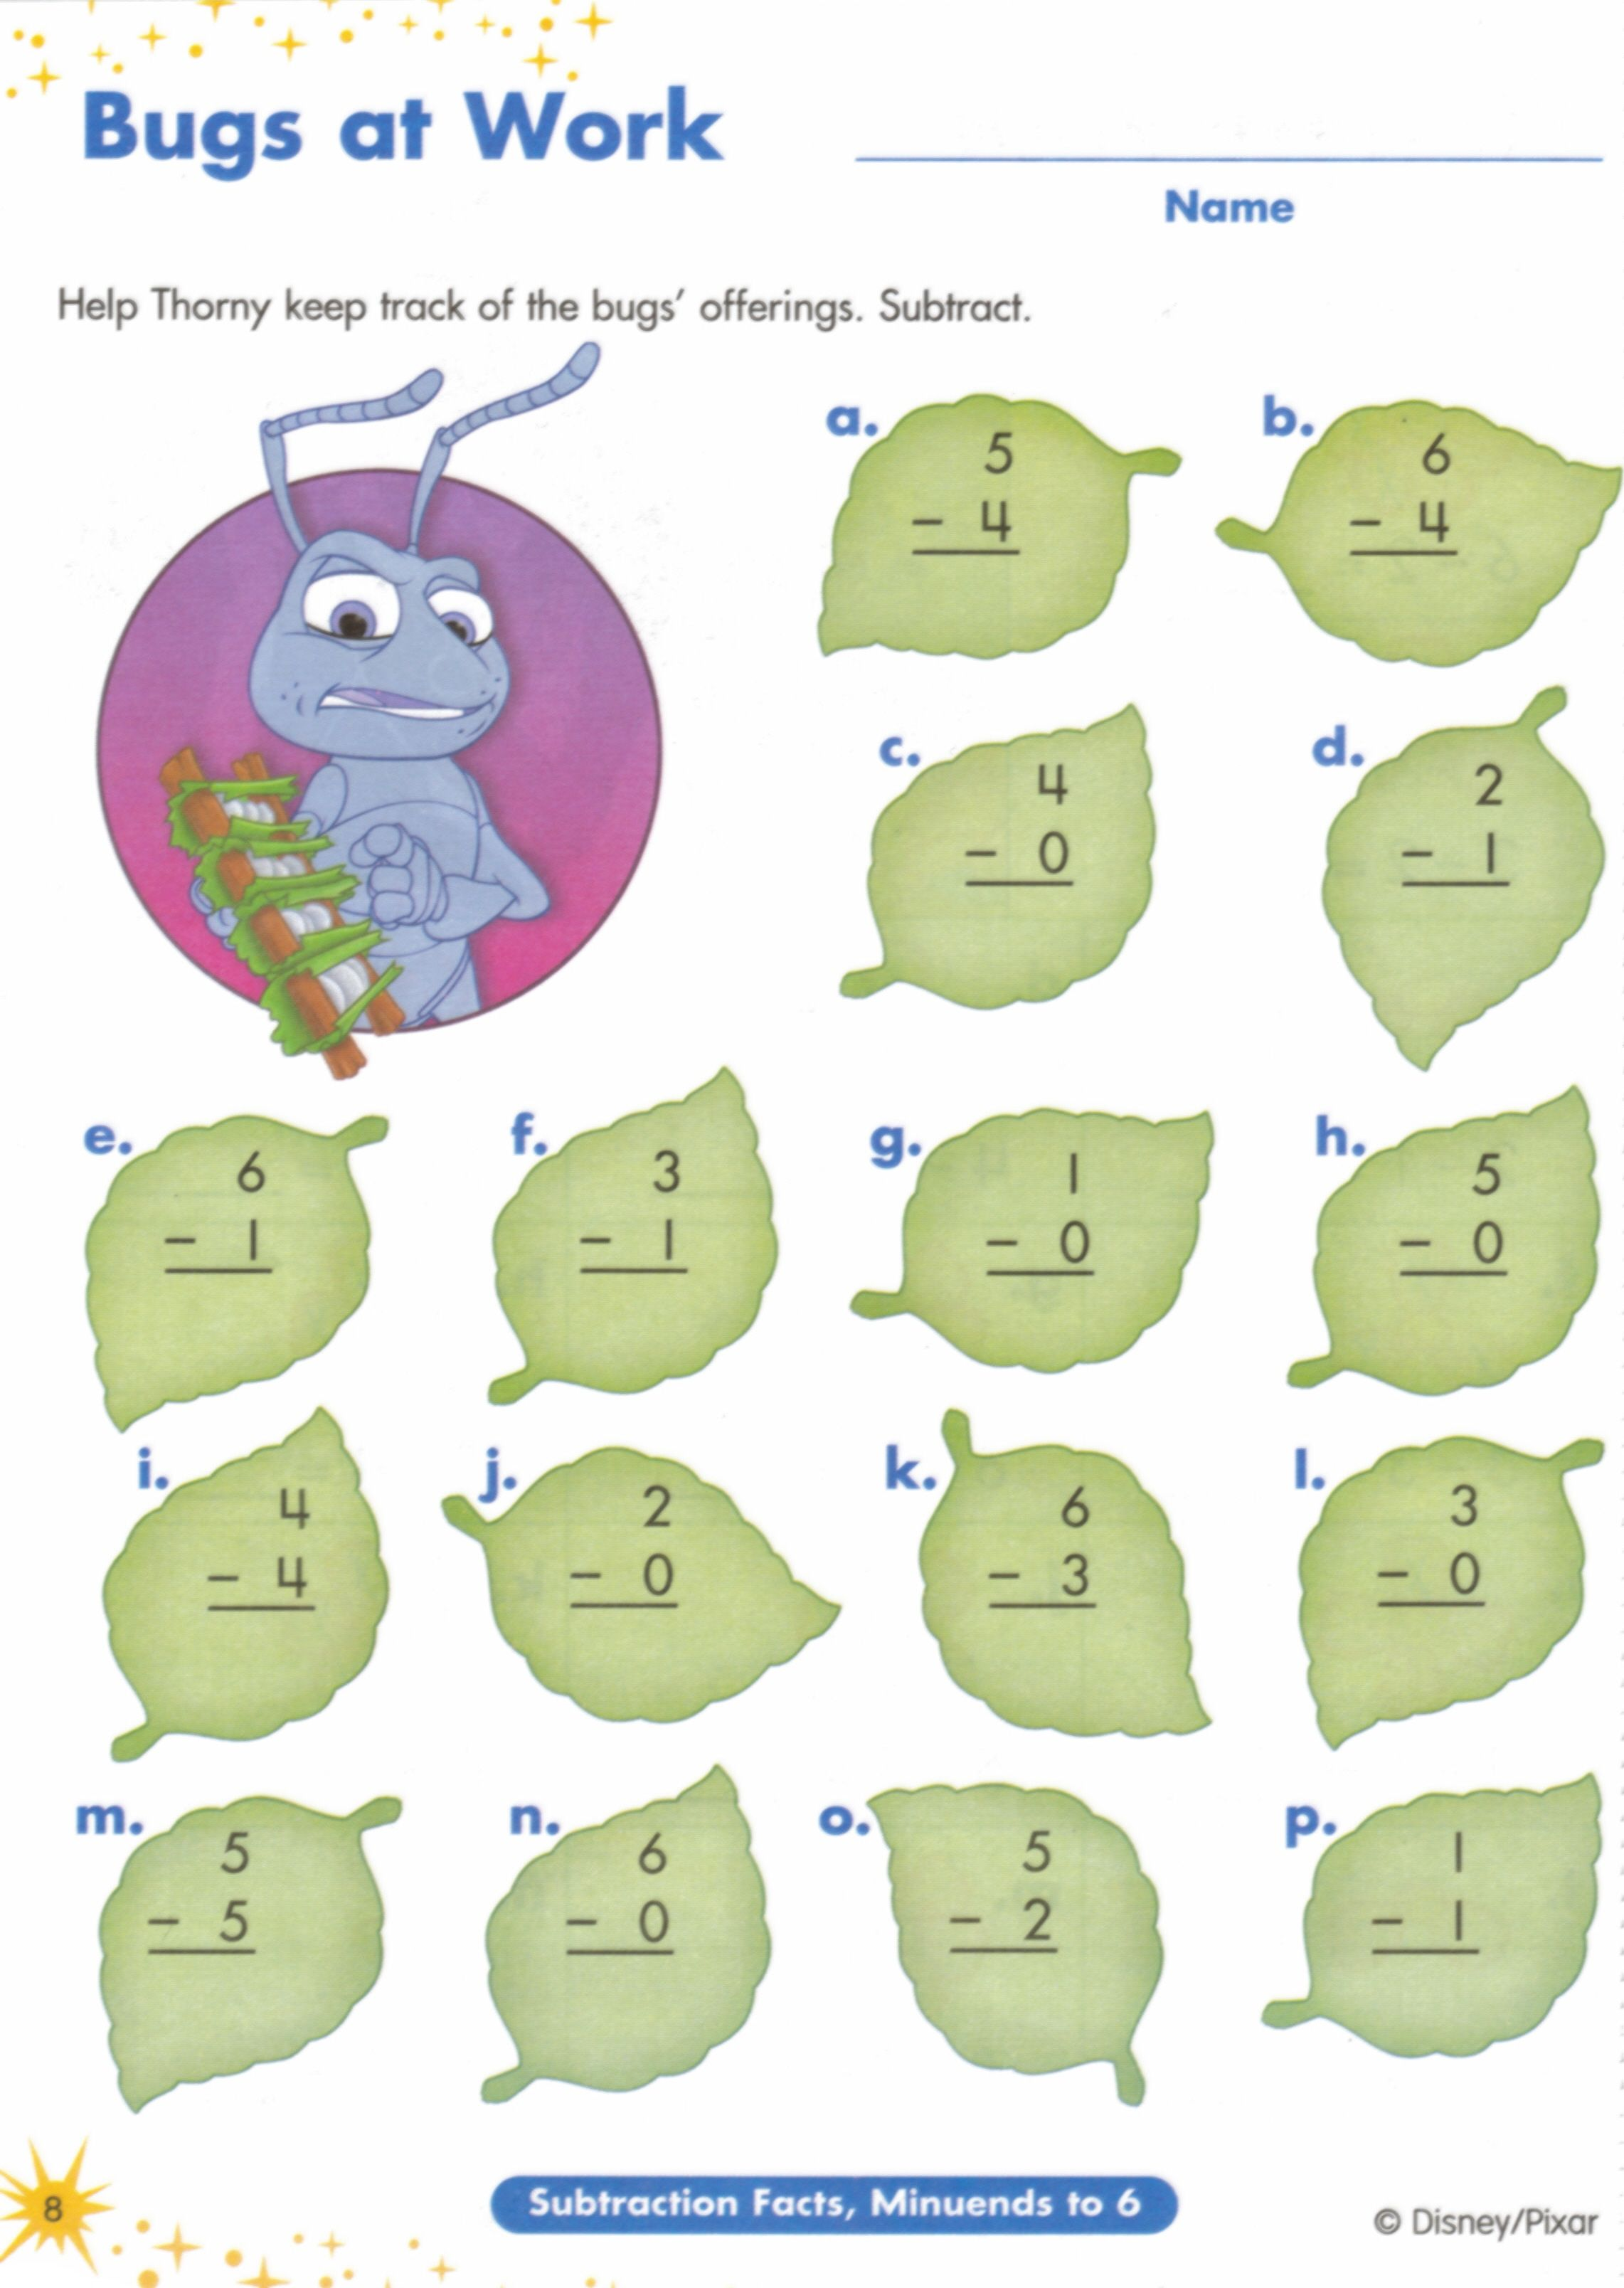 Proatmealus  Mesmerizing  Images About Worksheets On Pinterest  Fun Facts For Kids  With Magnificent  Images About Worksheets On Pinterest  Fun Facts For Kids Earth Day Worksheets And Jungles With Astonishing Second Grade Word Problems Worksheets Also Word Problem Worksheets Nd Grade In Addition Mixed Review Math Worksheets And Series Parallel Circuits Worksheet As Well As Positive And Negative Integers Worksheet Additionally Insects Worksheets From Pinterestcom With Proatmealus  Magnificent  Images About Worksheets On Pinterest  Fun Facts For Kids  With Astonishing  Images About Worksheets On Pinterest  Fun Facts For Kids Earth Day Worksheets And Jungles And Mesmerizing Second Grade Word Problems Worksheets Also Word Problem Worksheets Nd Grade In Addition Mixed Review Math Worksheets From Pinterestcom